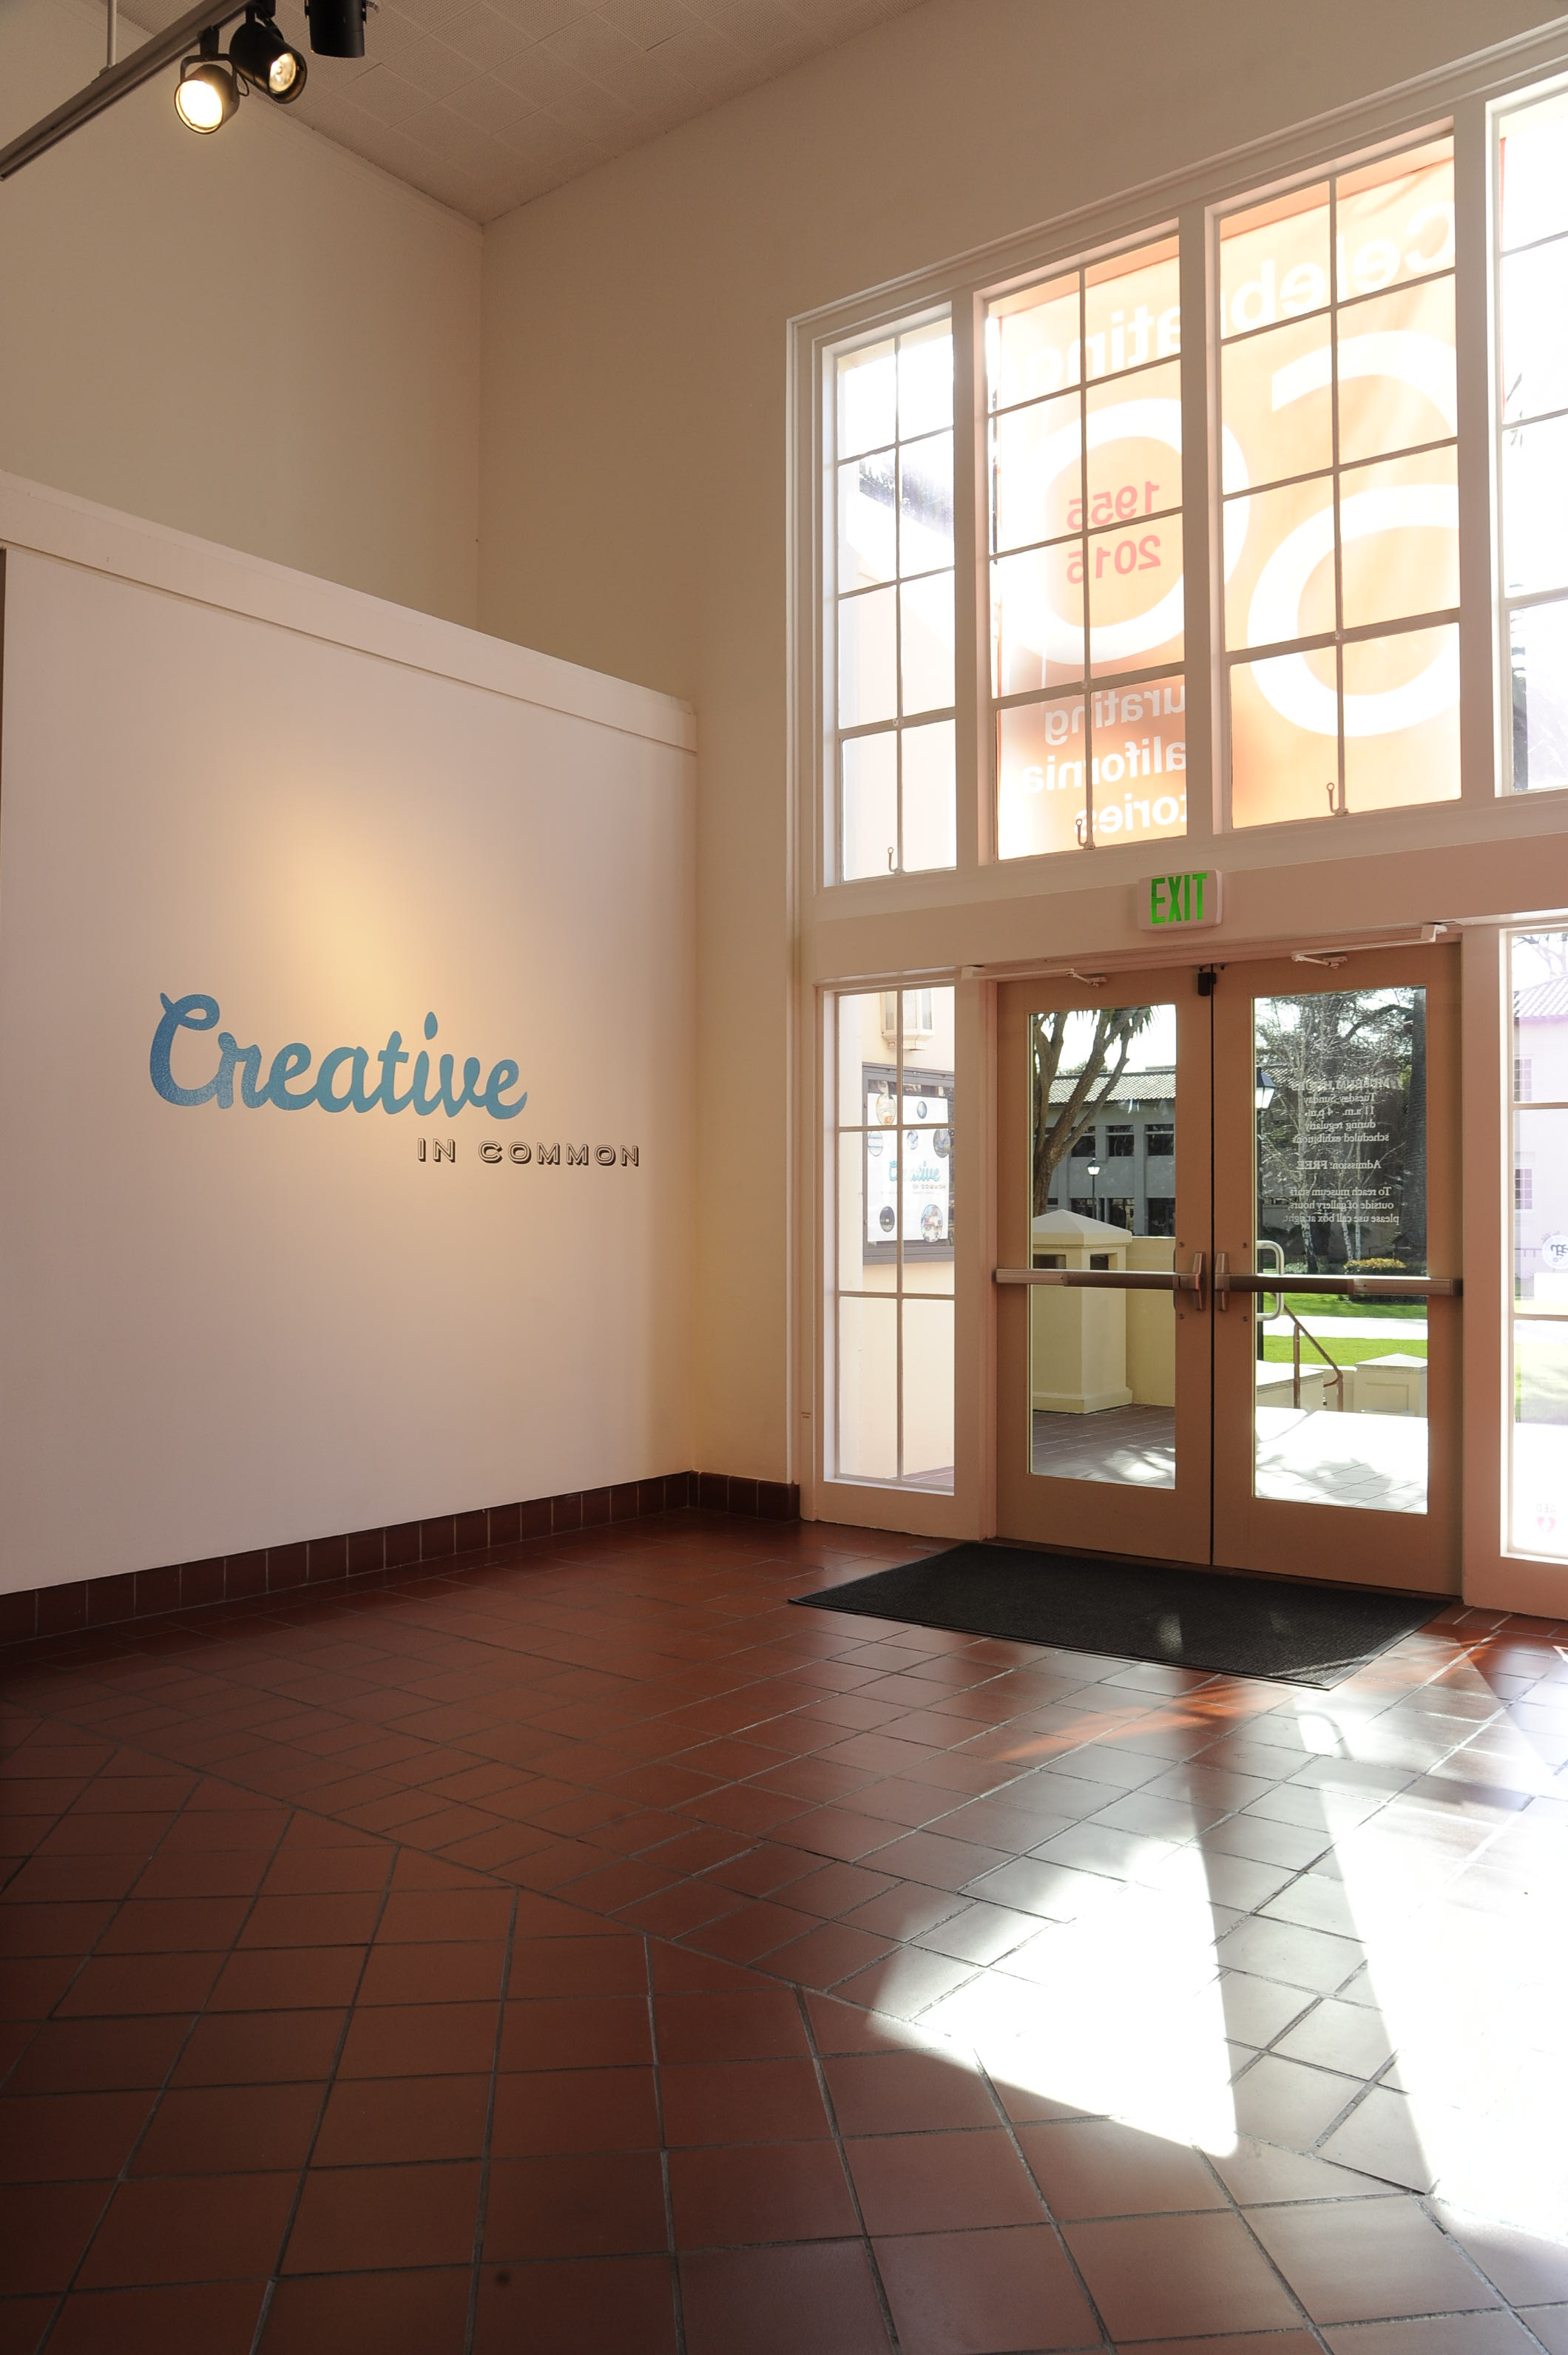 Creative in Common_Fall 2014_Foyer (1).JPG